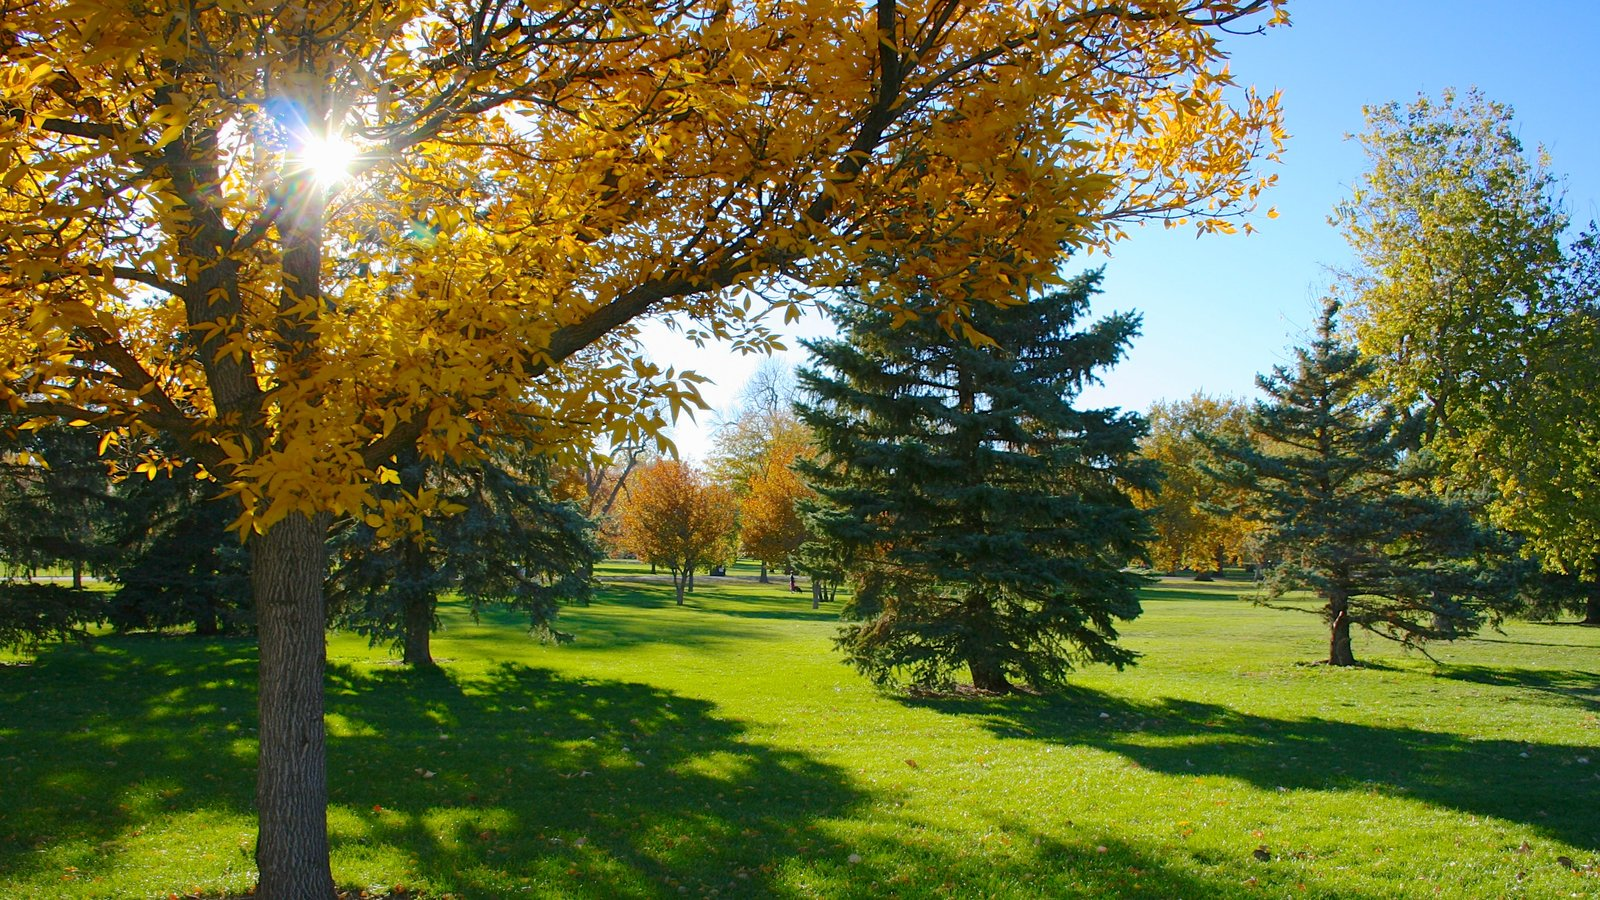 Fall Pictures: View Images of City Park